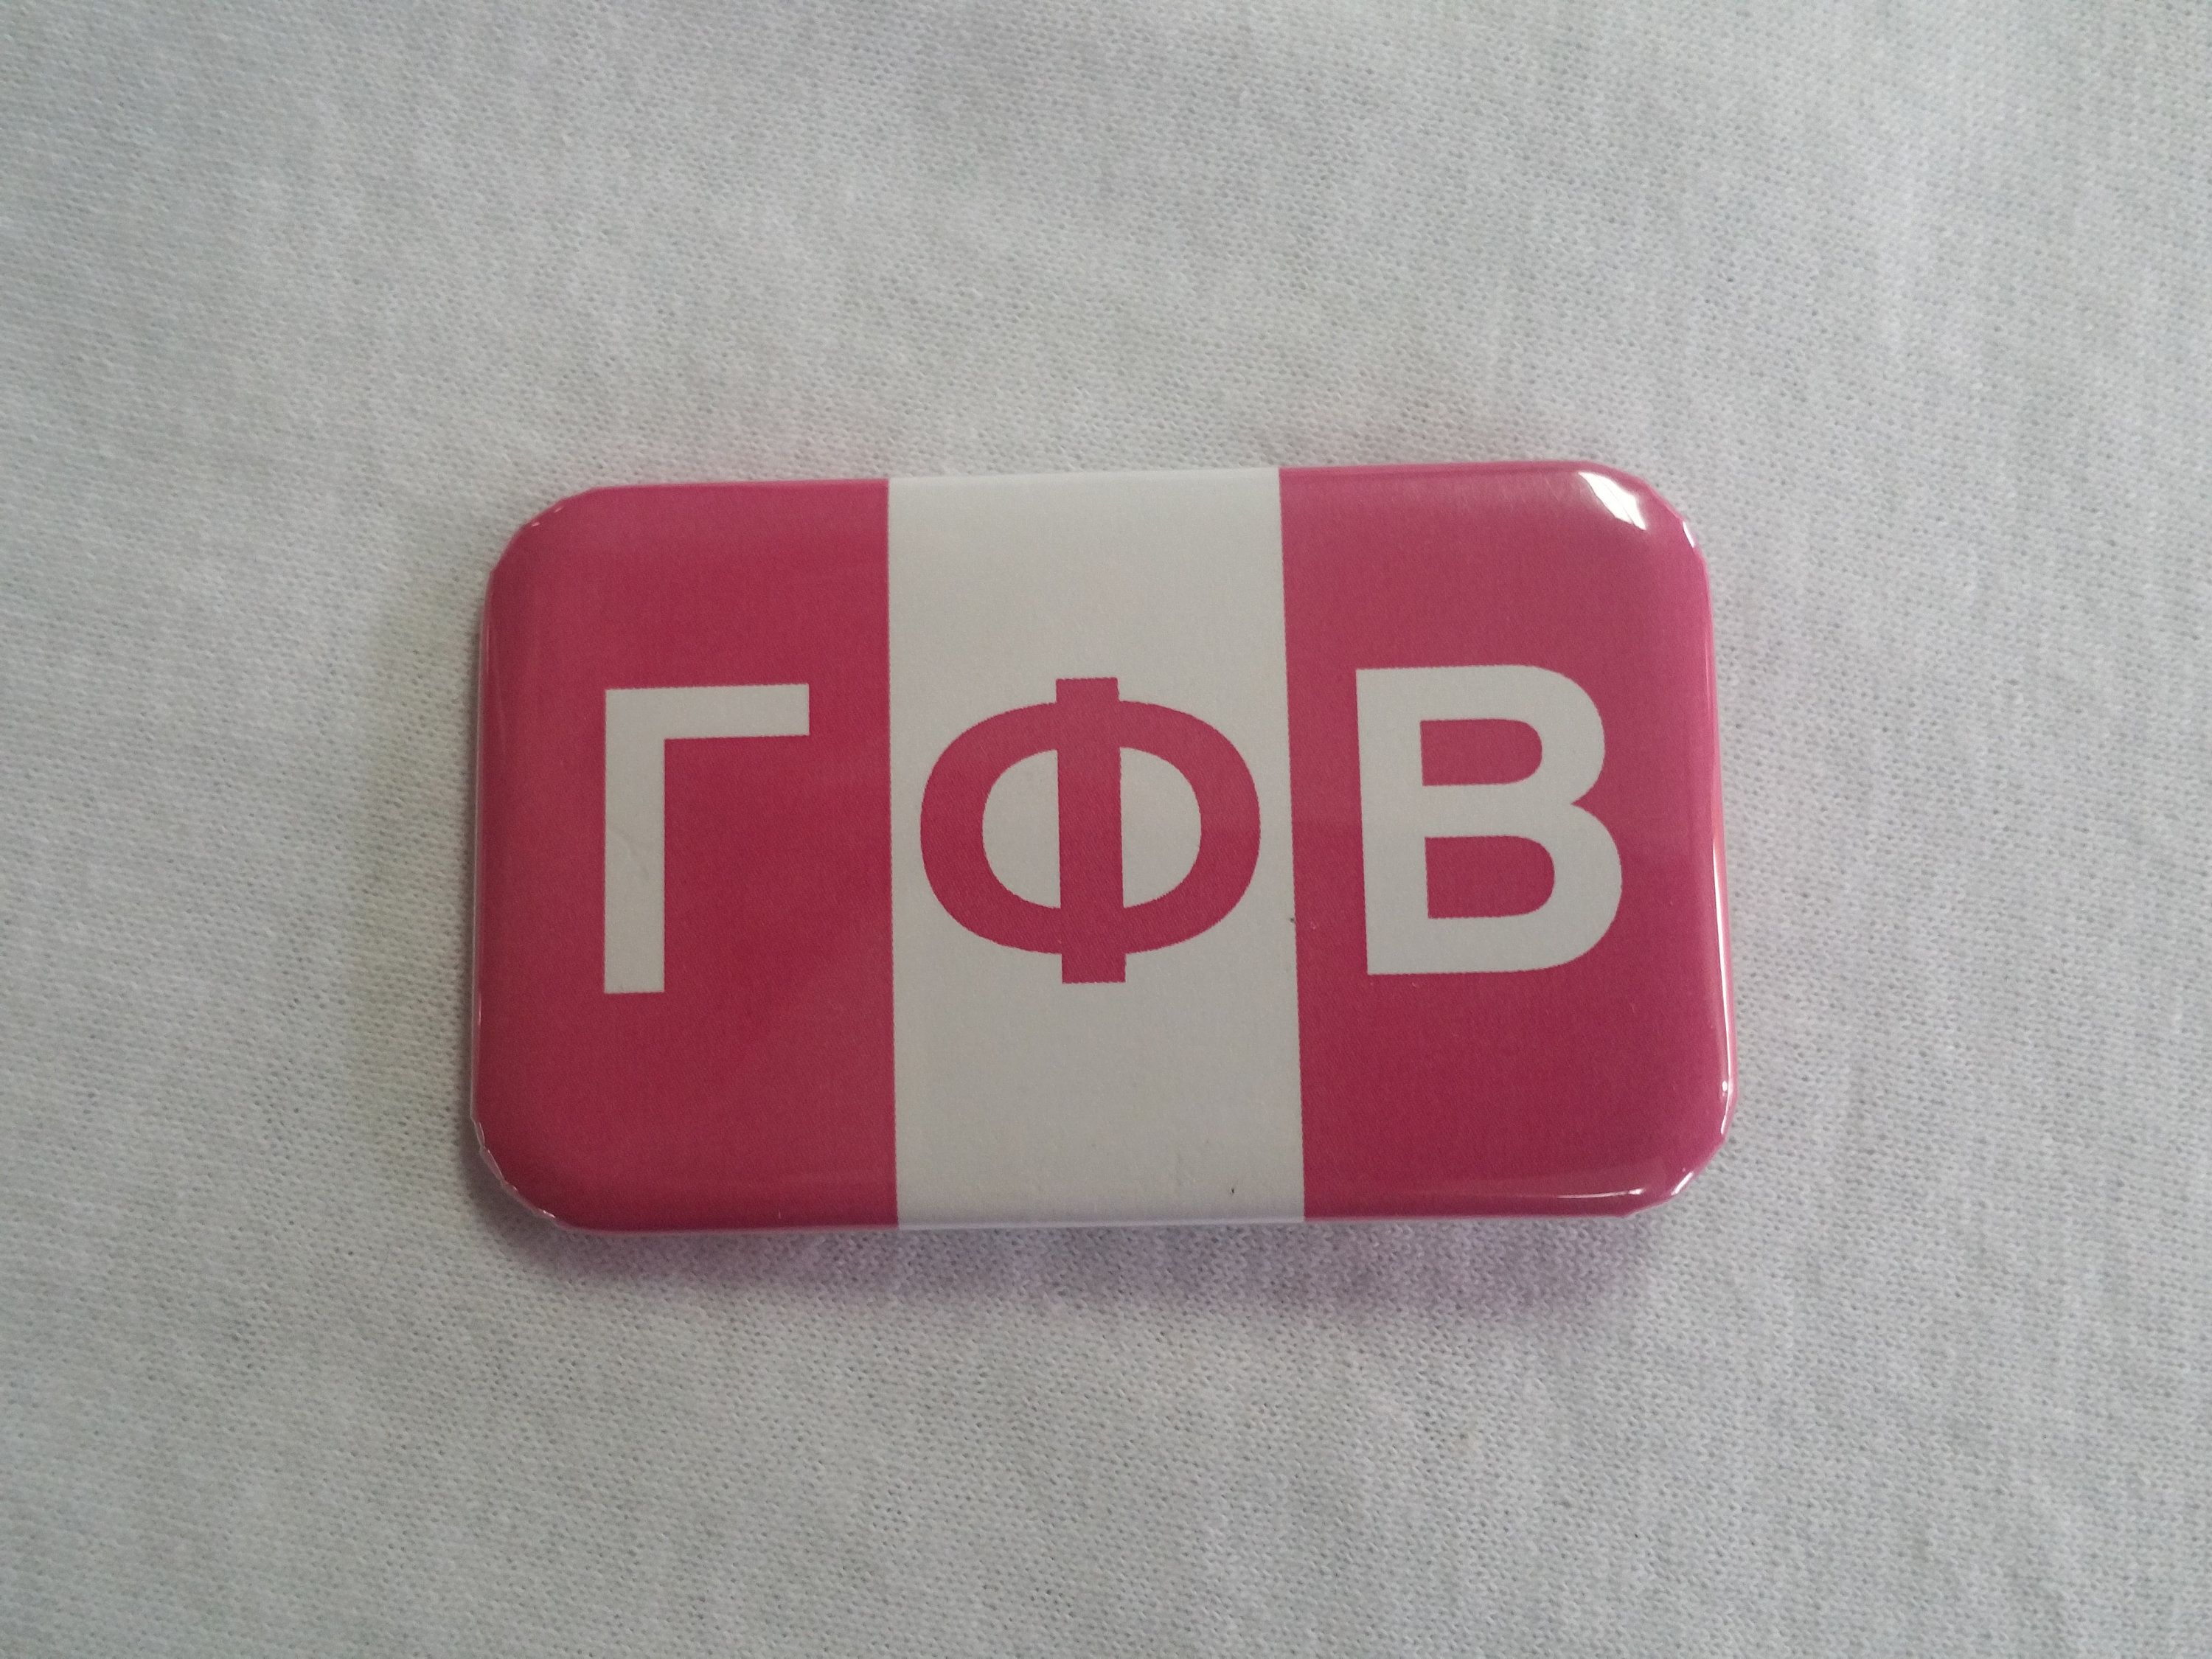 Pins Gamma Phi Beta Flag Pin 3 00 Be Sure To Check Out Our Store At Sorority Gfb Gammaphibeta Pin Gr Gamma Phi Gamma Phi Beta Gamma Phi Beta Pin